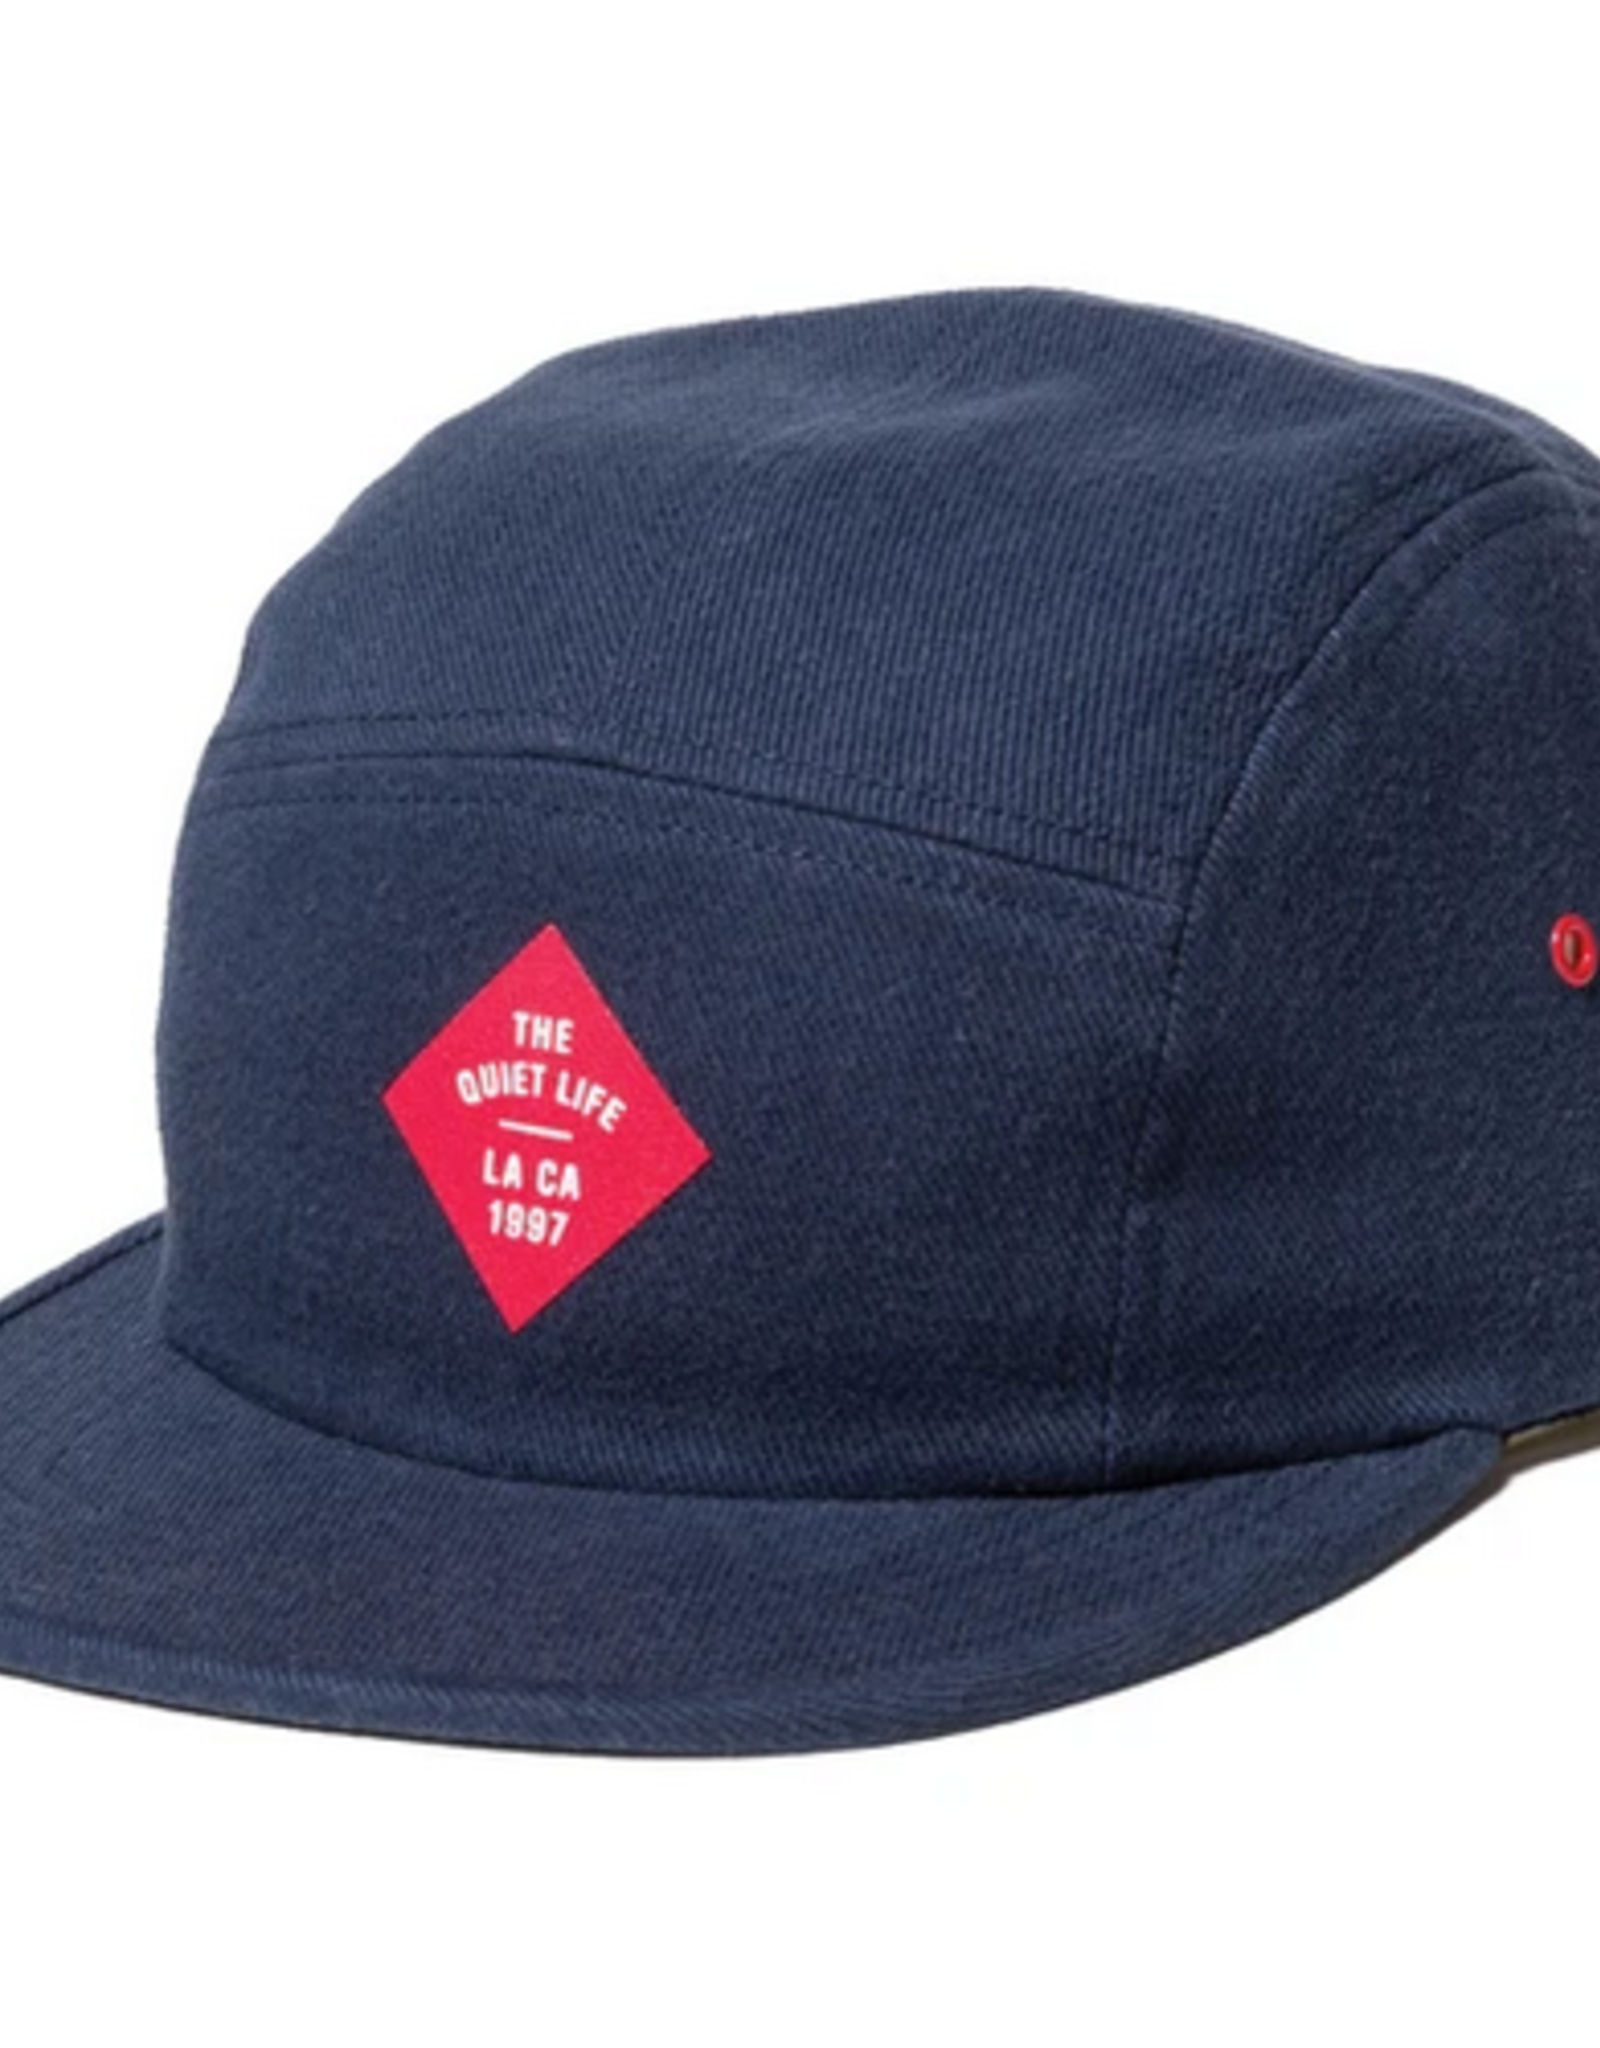 THE QUIET LIFE THE QUIET LIFE TRAVELER 5 PANEL CAMPER HAT NAVY